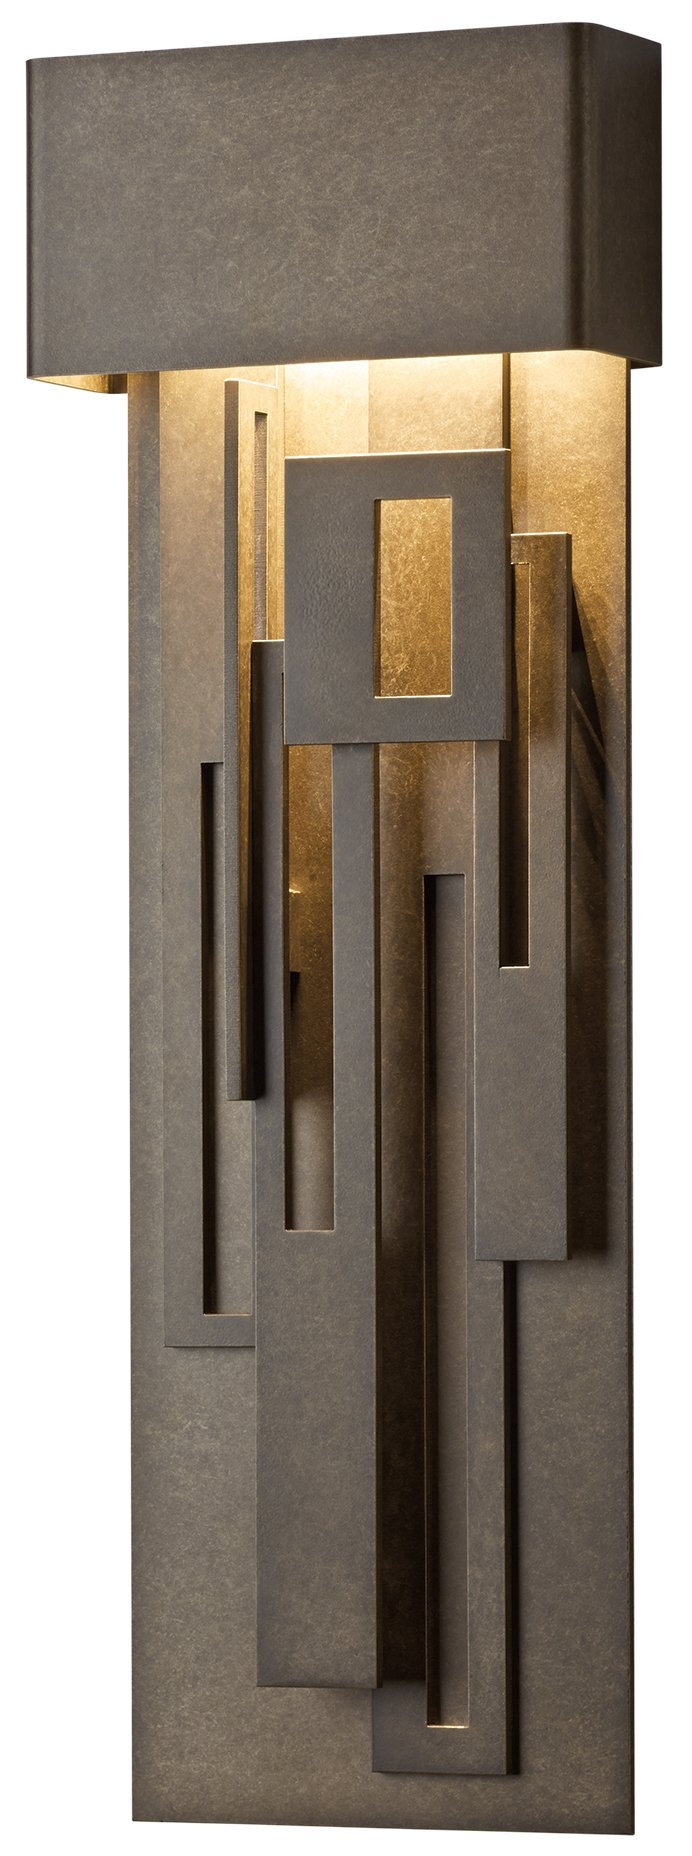 Hubbardton Forge 302523 Collage LED Modern / Contemporary Outdoor Wall Sconce - Large HF-302523